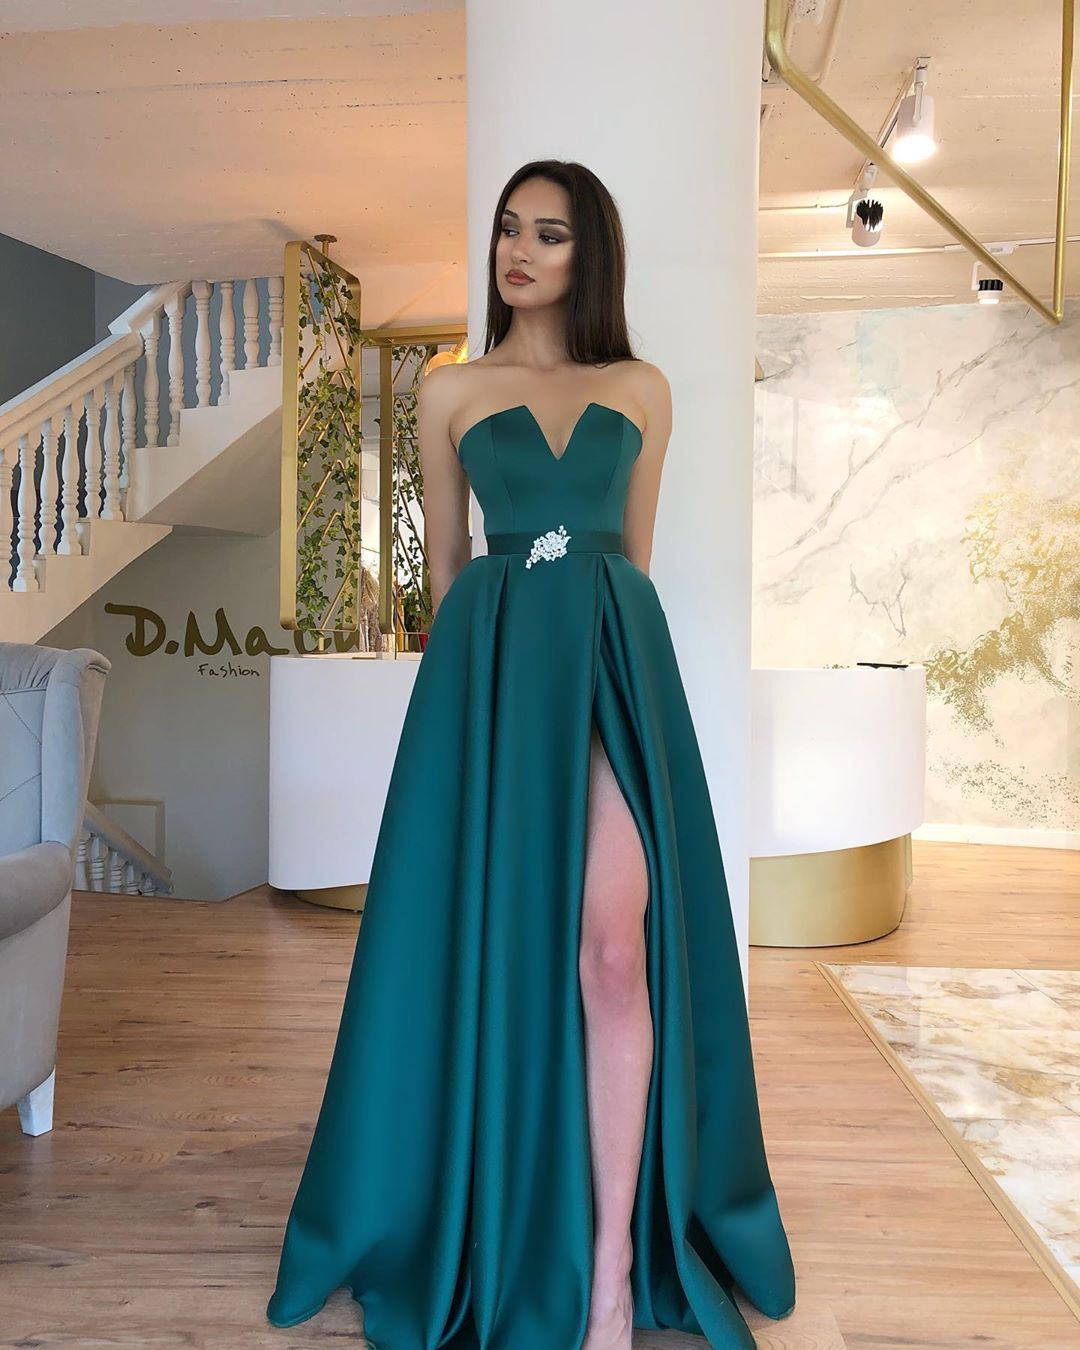 Green Beads Evening Dresses Long 2019 Sleeveless Backless Formal Occasion Party Women Prom Dresses Homecoming Dresses